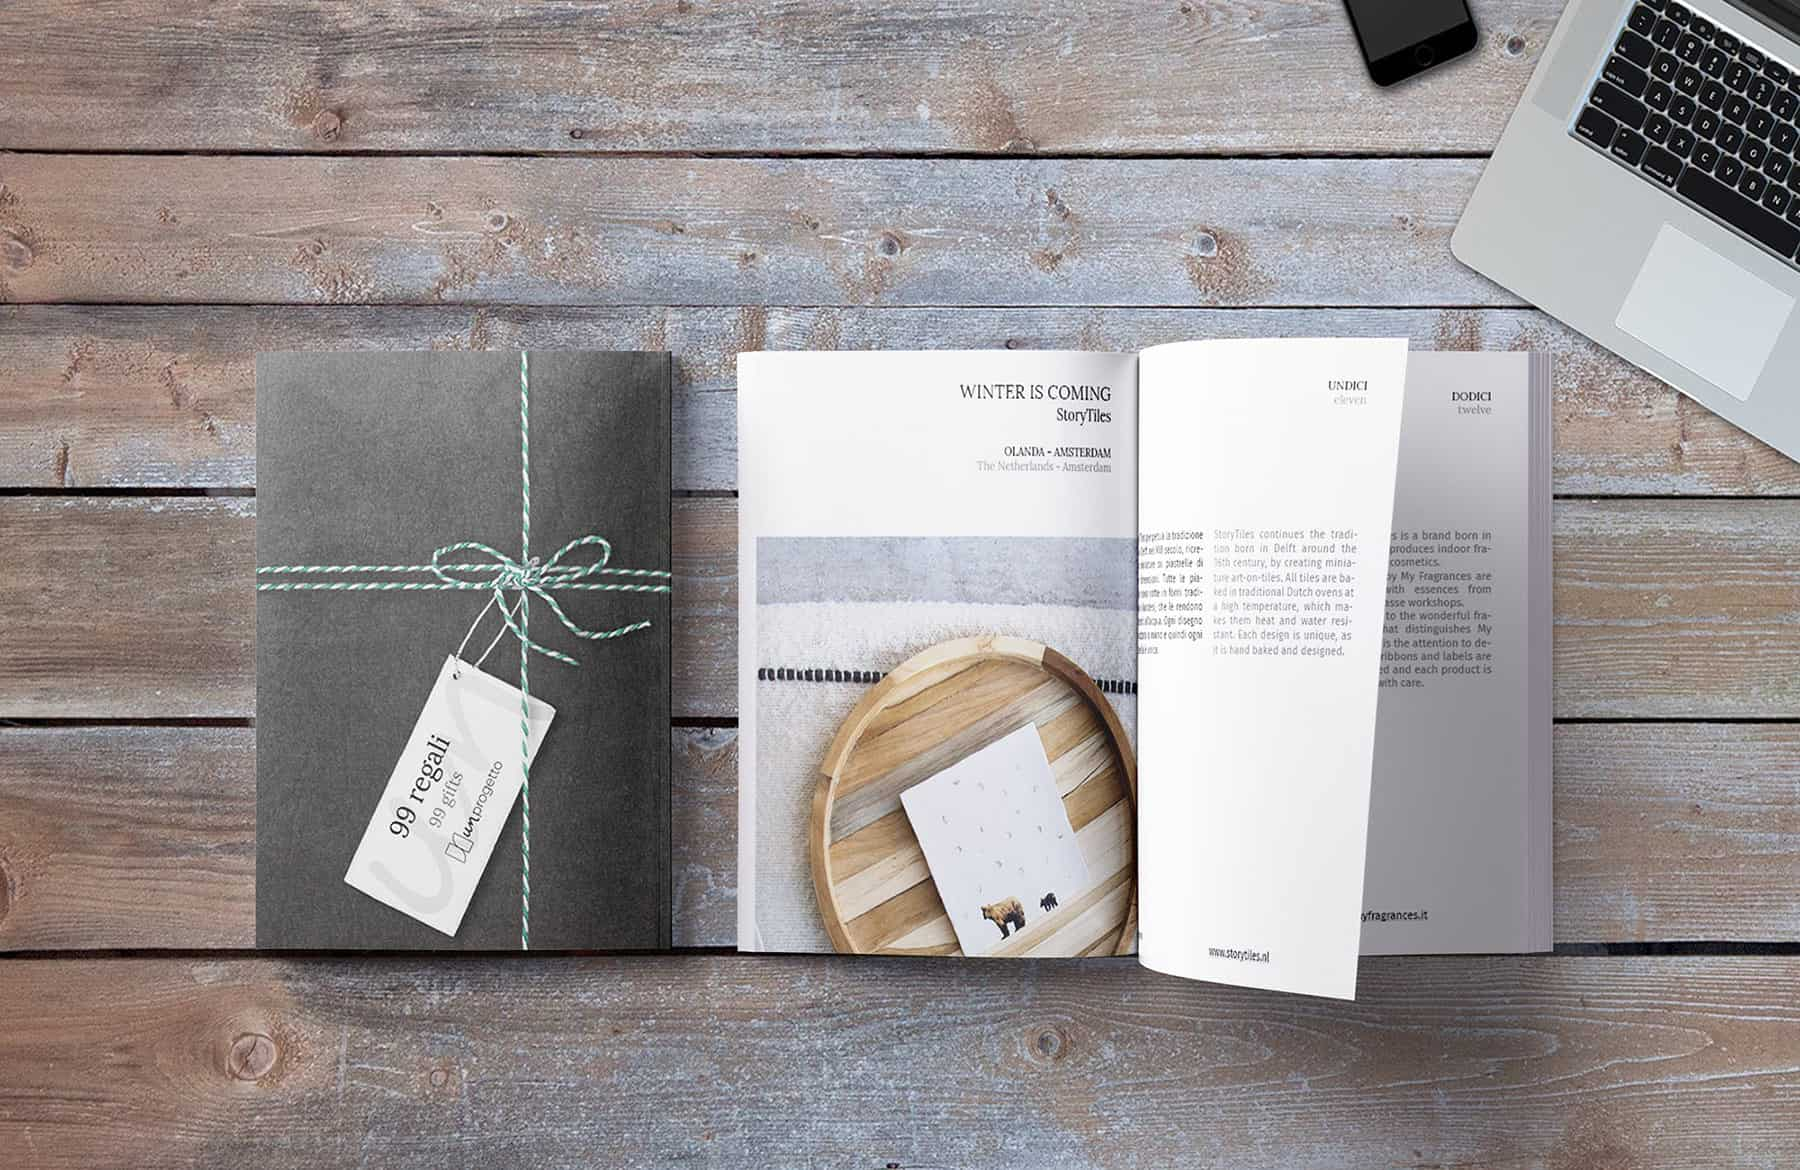 99gifts design gift ideas